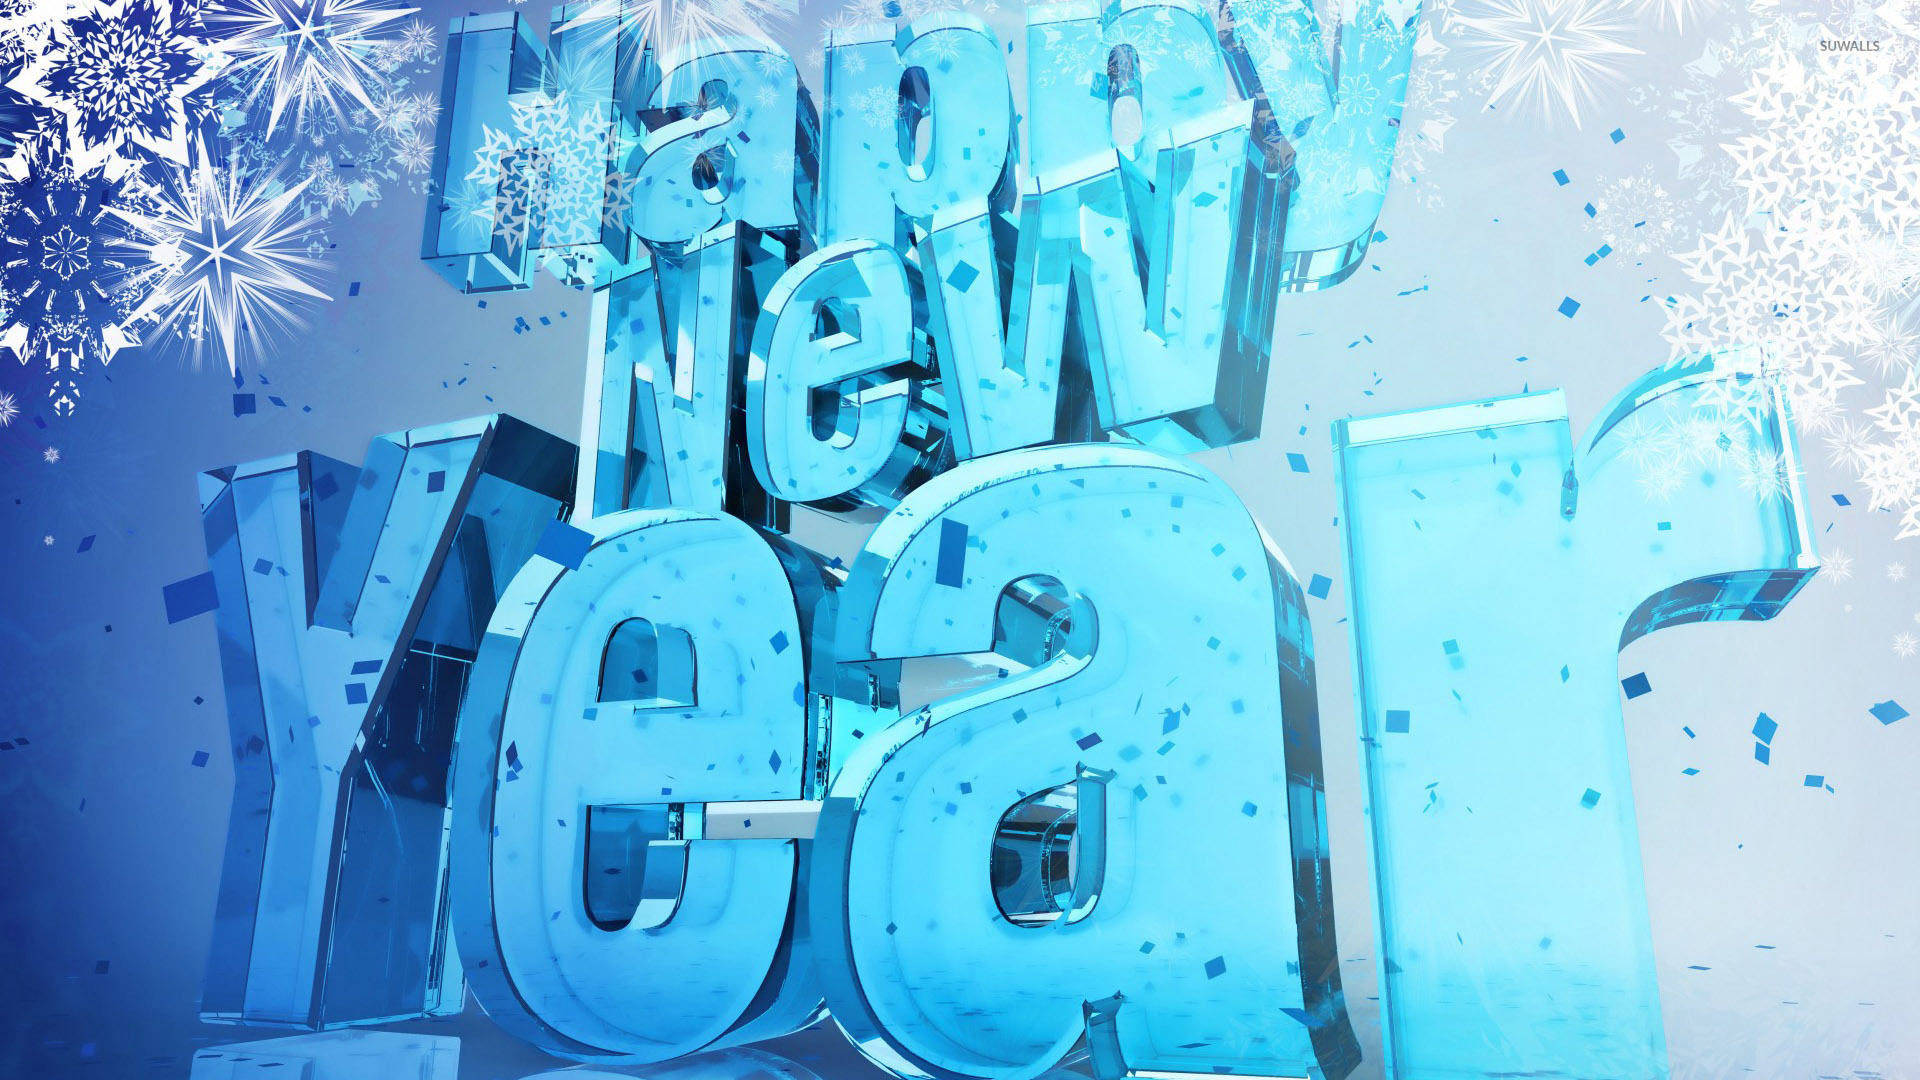 Blue Happy New Year wallpaper - Holiday wallpapers - #50341